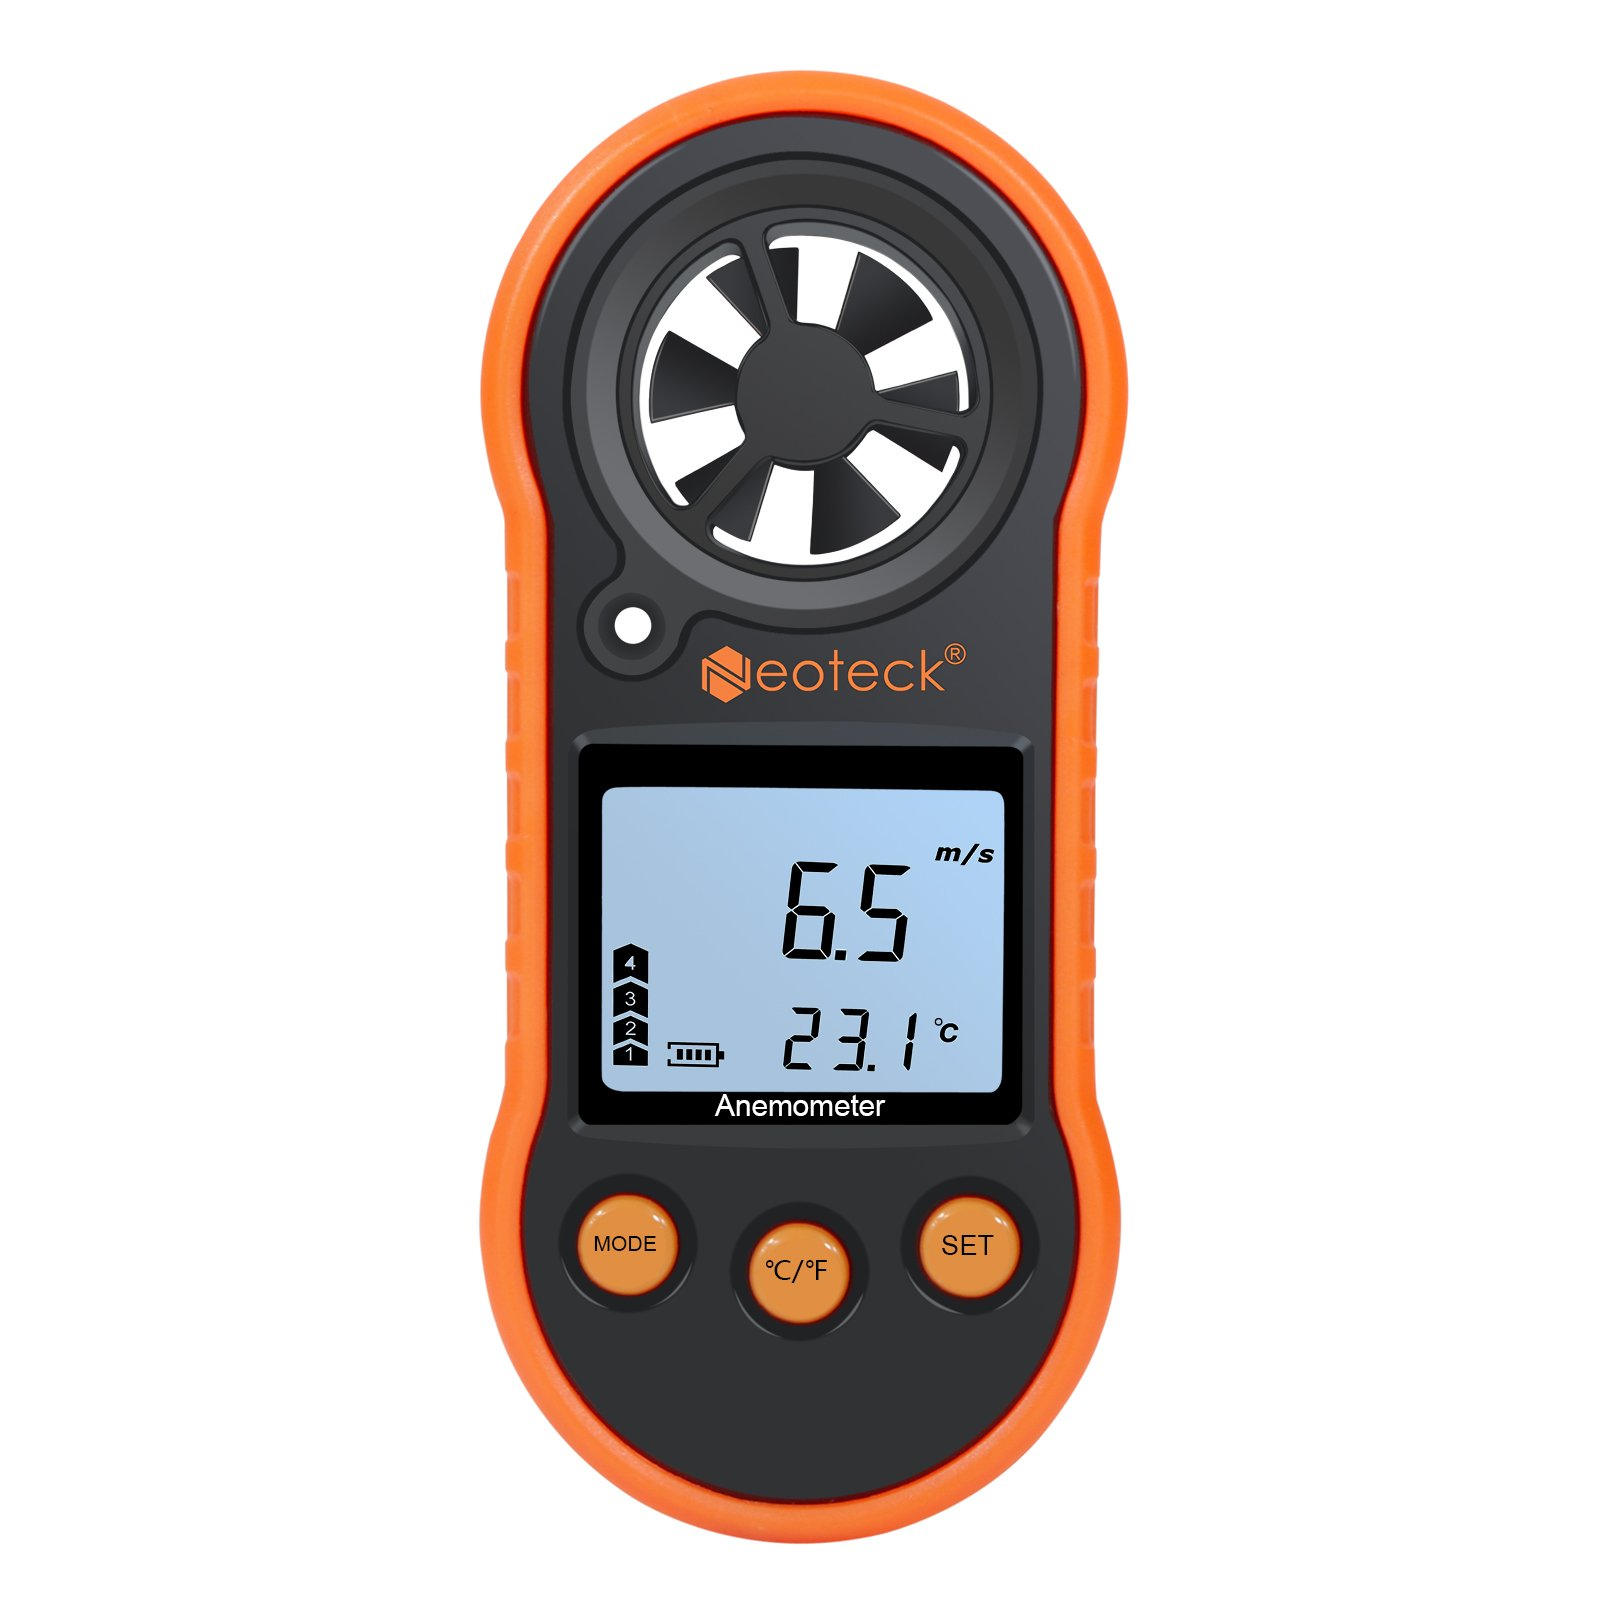 Digital Wind Speed Gauge Neoteck Handheld Anemometer Air Flow Velocity Meter Measuring Wind Speed Temperature with LCD Backlight for Windsurfing Kite Flying Sailing Surfing Fishing by Neoteck (Image #1)